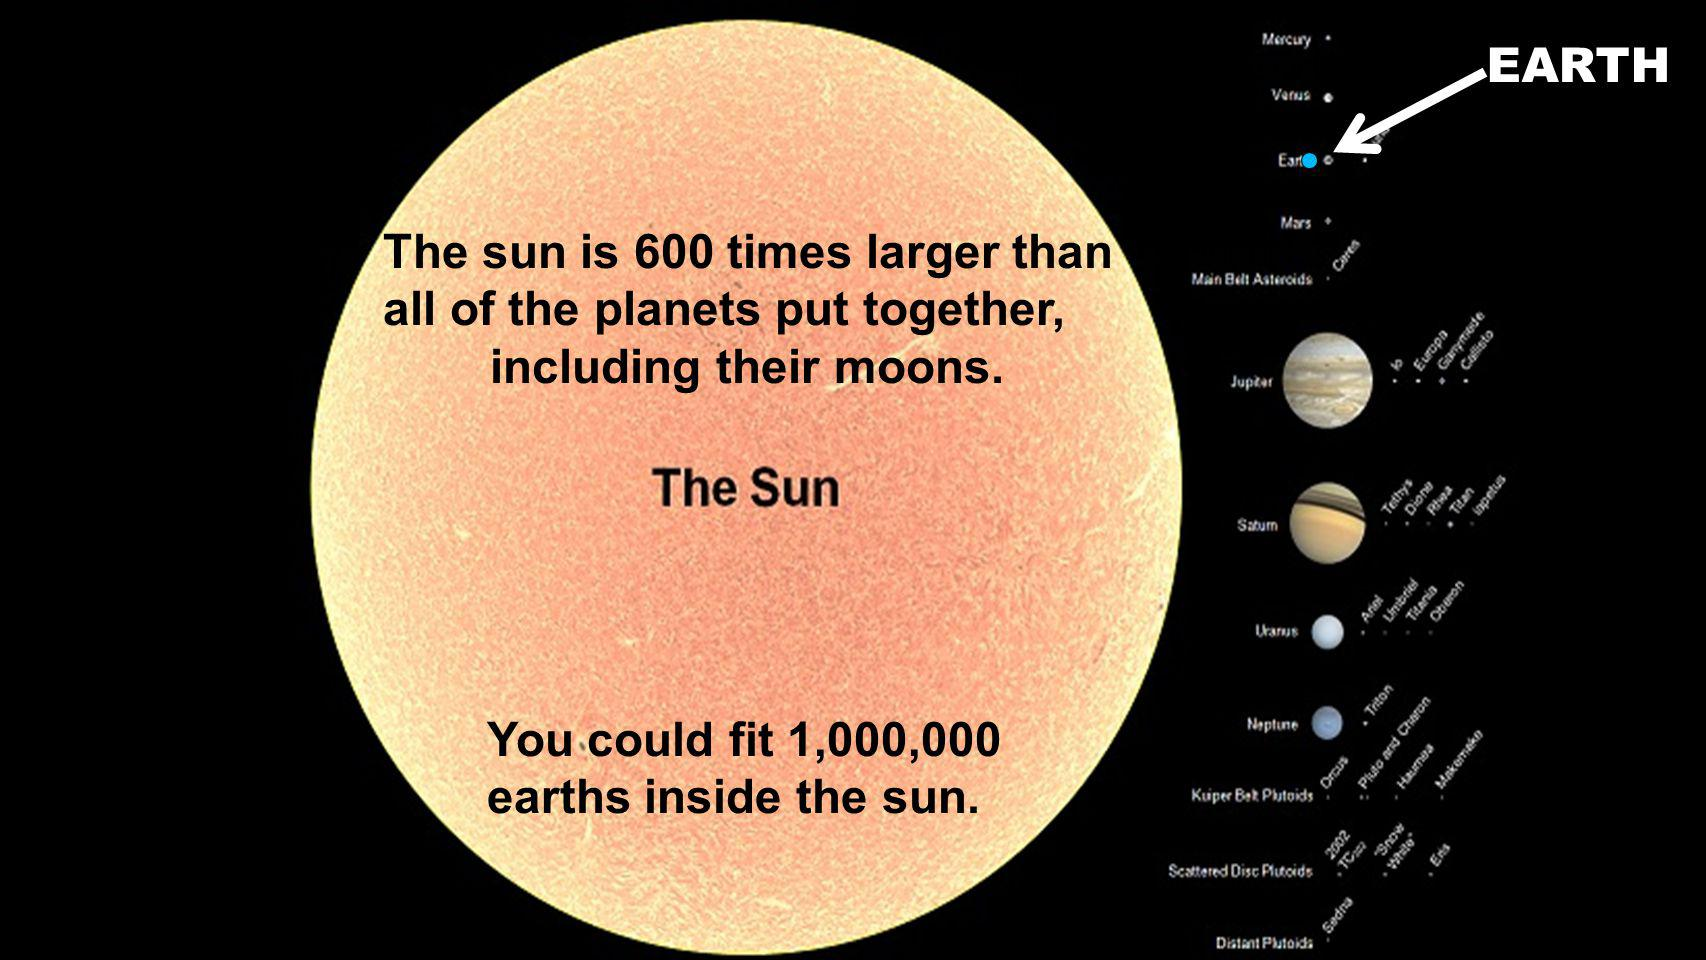 The sun is 600 times larger than all of the planets put together, including their moons.